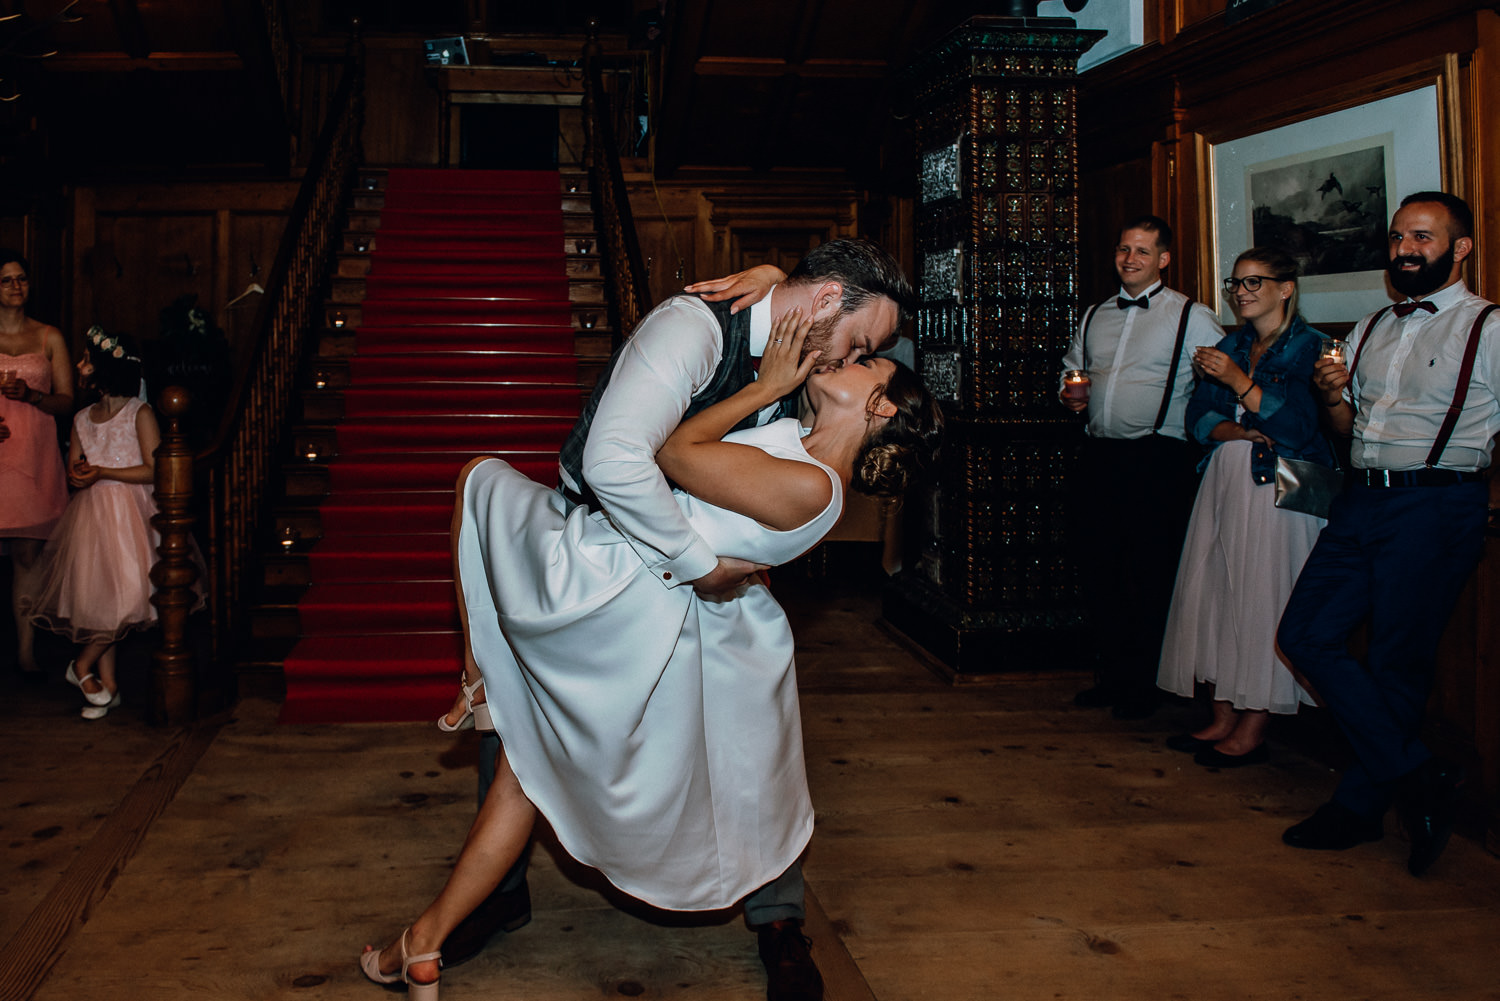 villa maund first dance